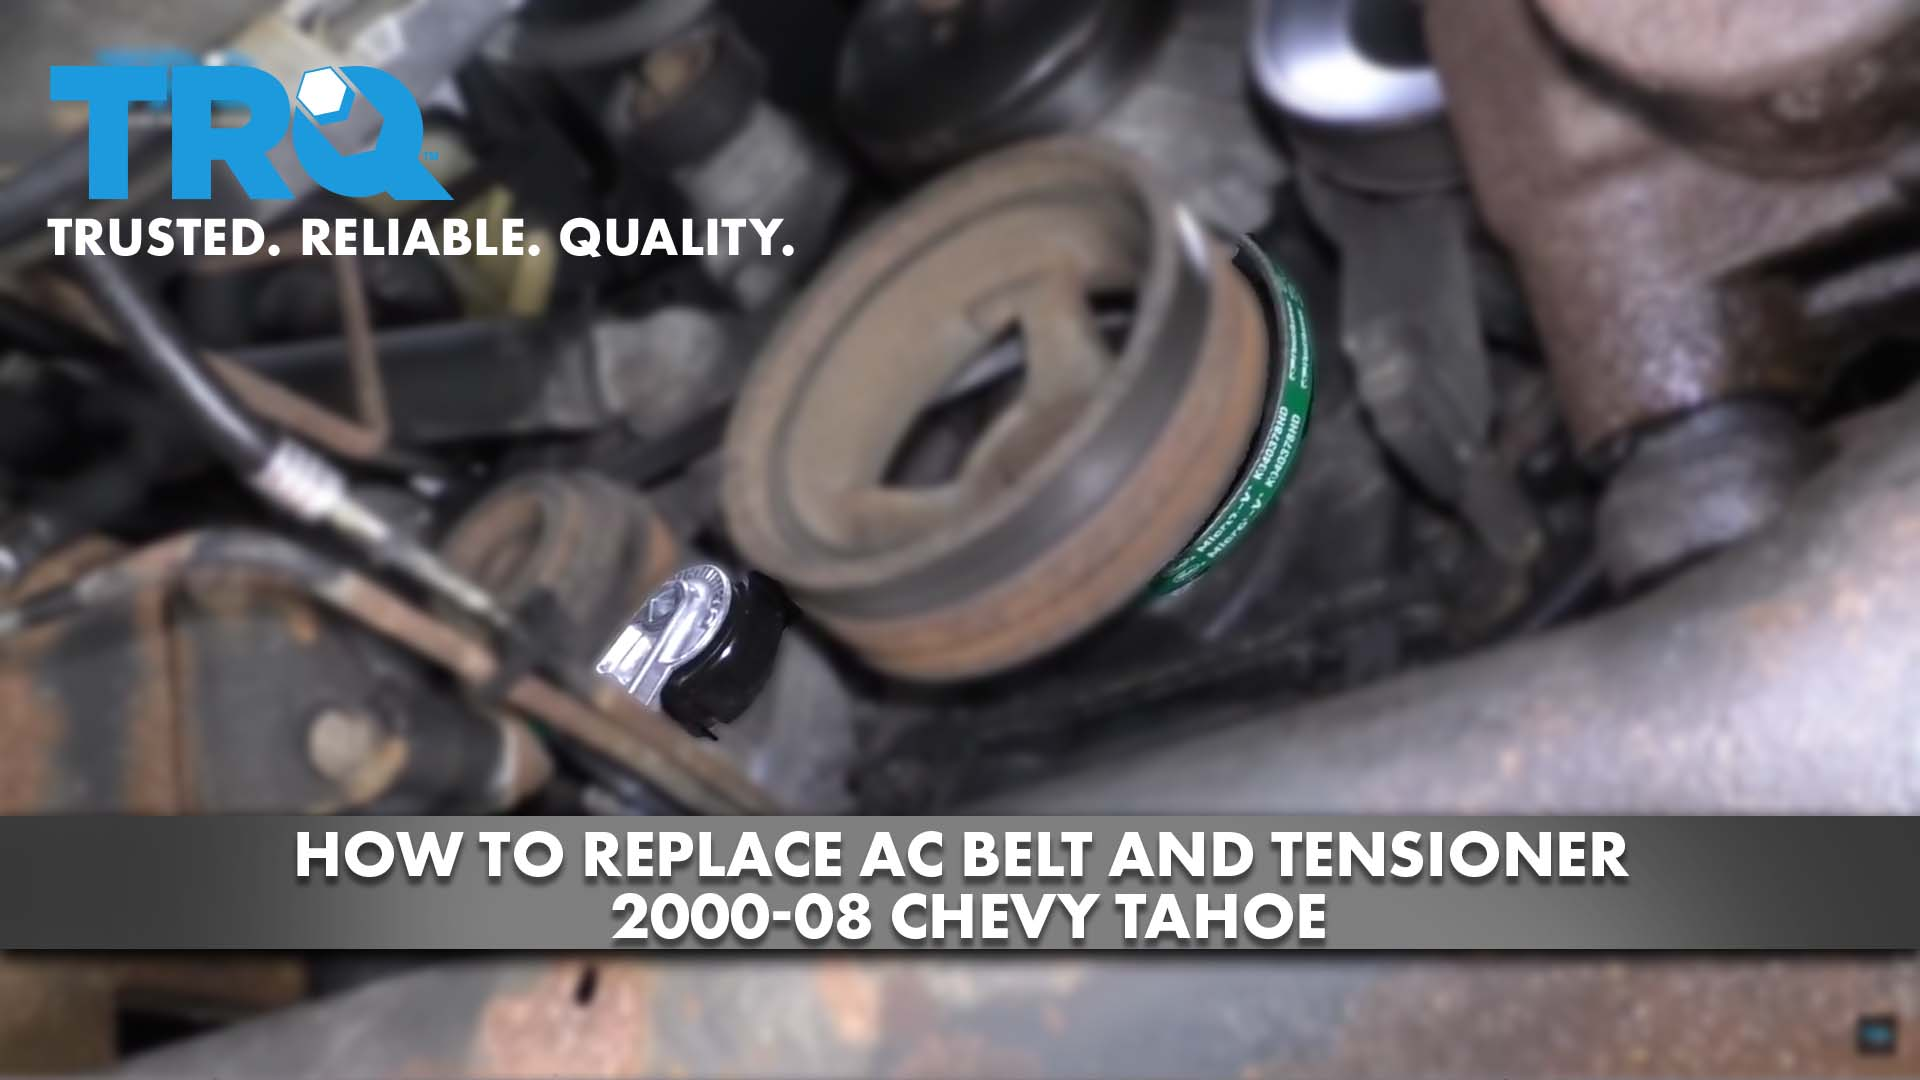 How to Replace AC Belt and Tensioner 2000-08 Chevy Tahoe